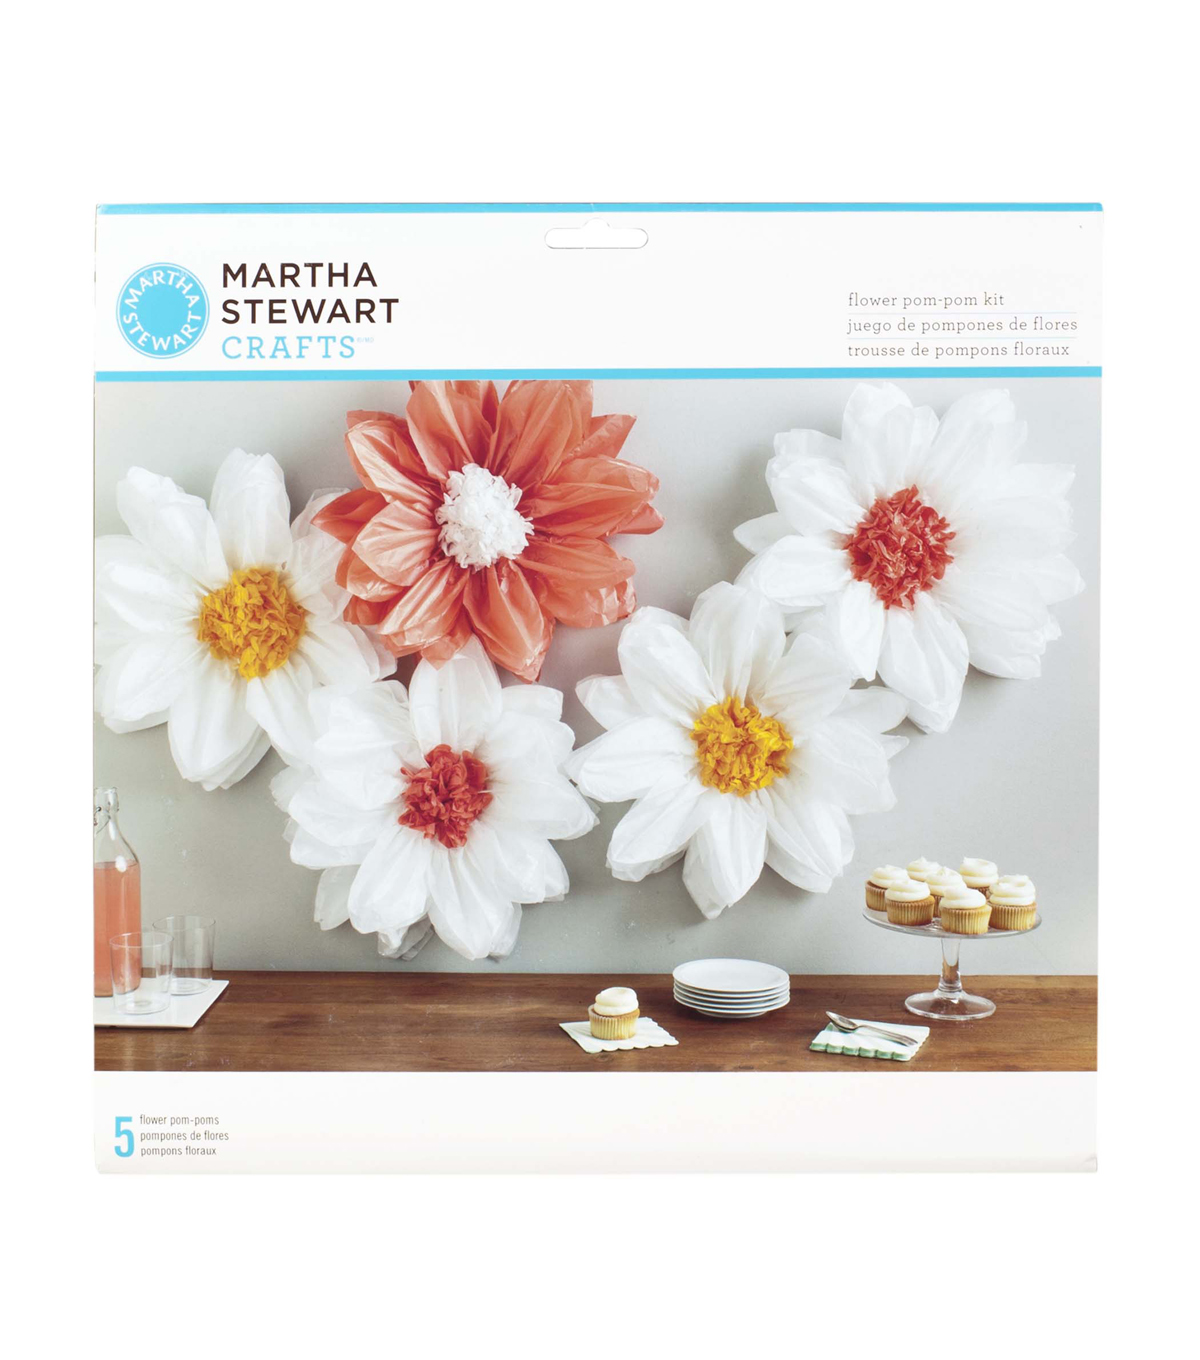 Martha stewart tissue paper flower bouquet kit ukrandiffusion martha stewart tissue paper pom pom kit daisy light joann mightylinksfo